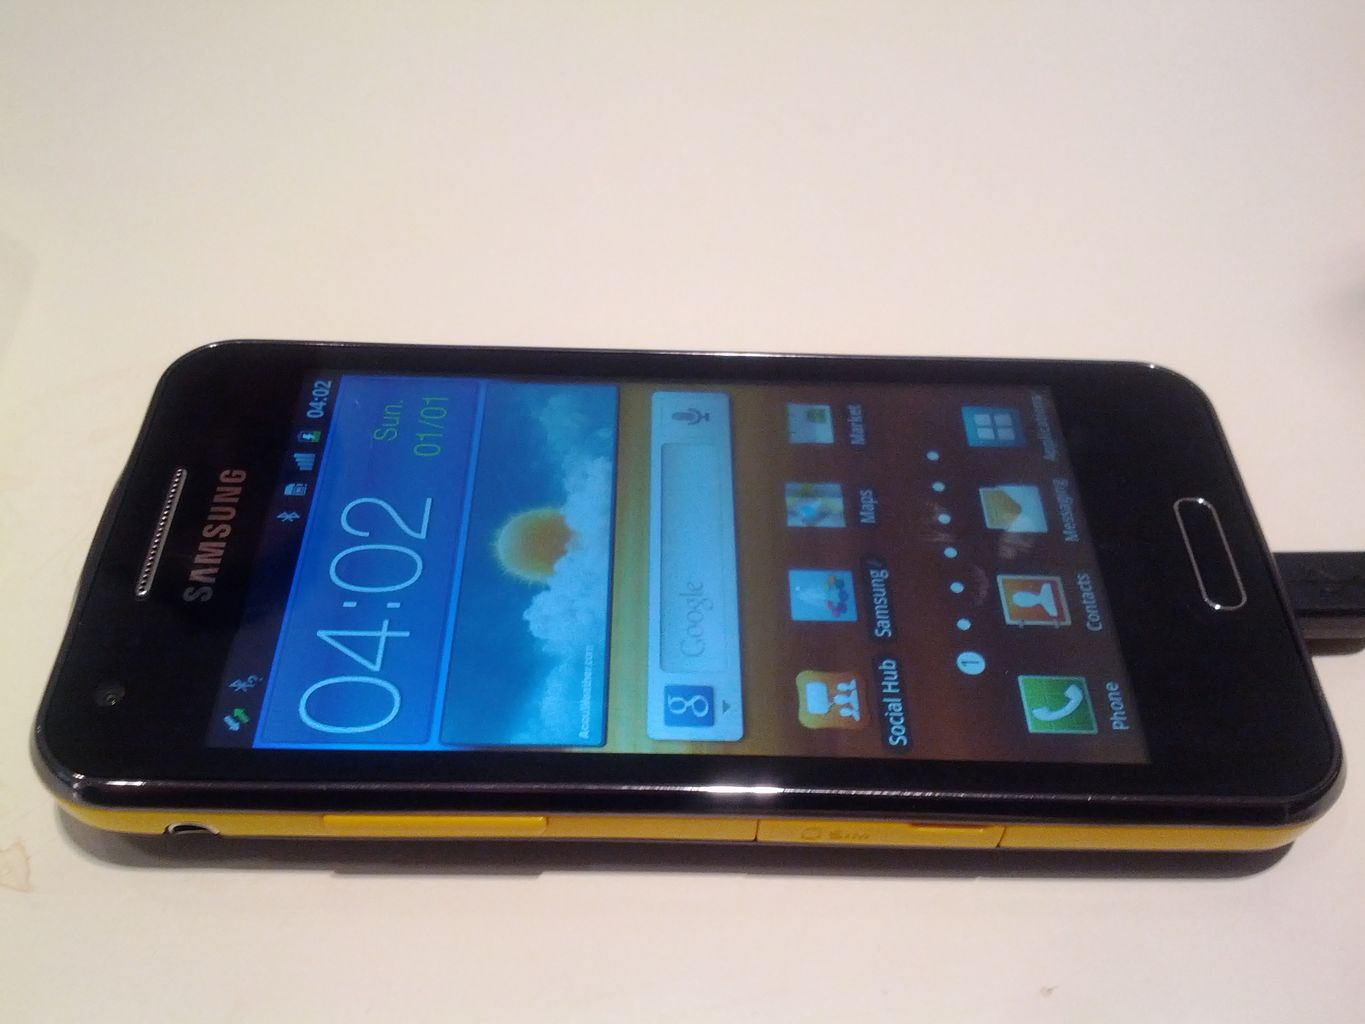 Samsung Galaxy Beam - Review